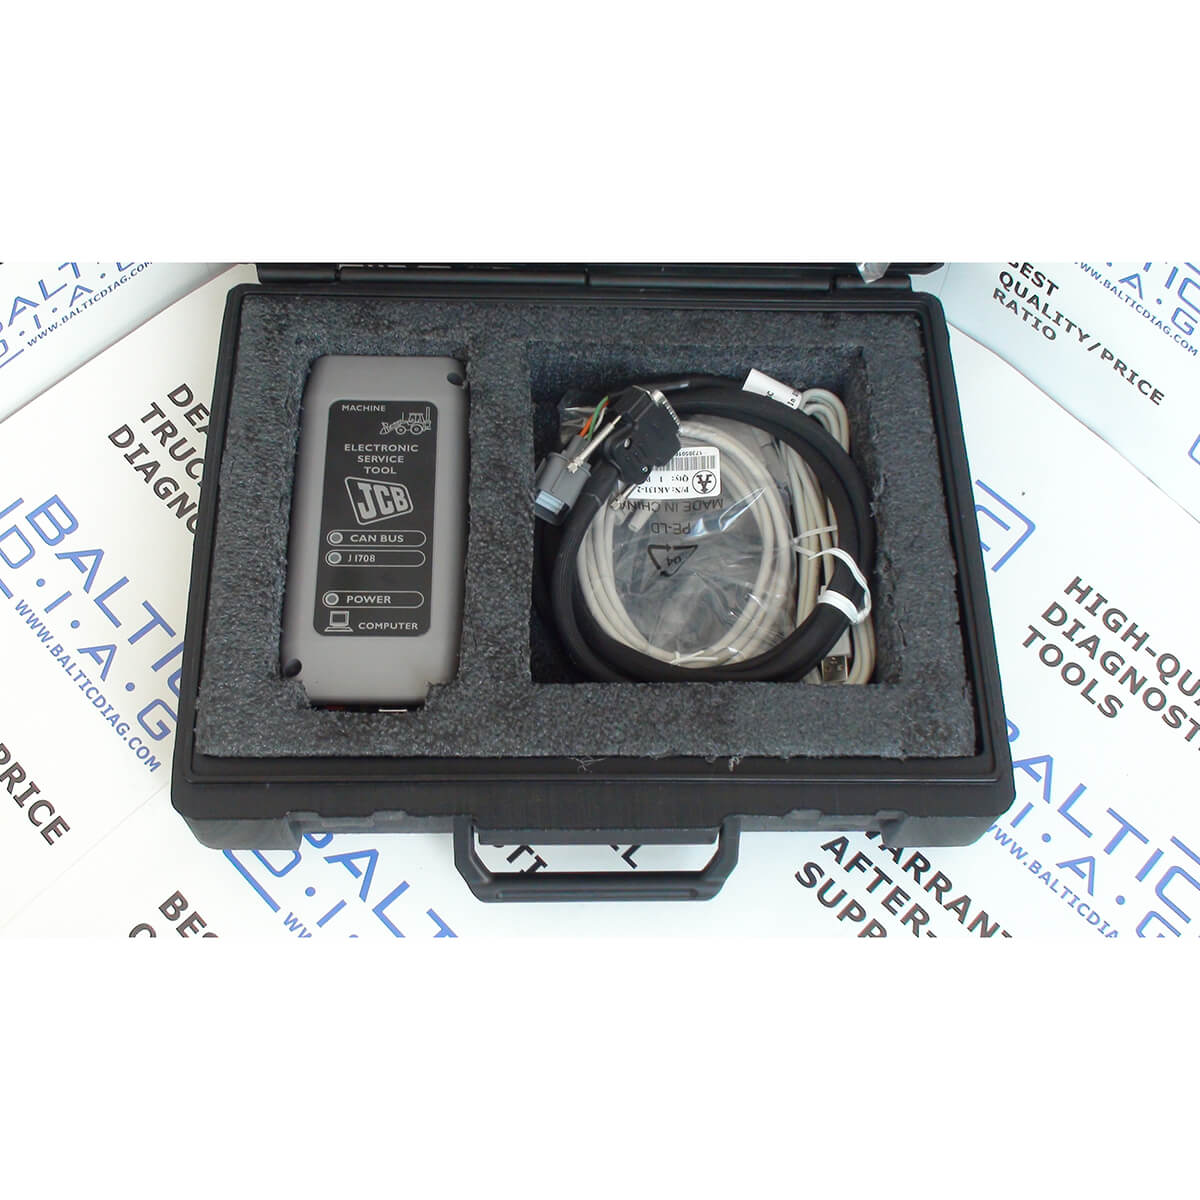 Full kit includes service manuals and service parts catalog • Newest  database and latest firmware solution in the market